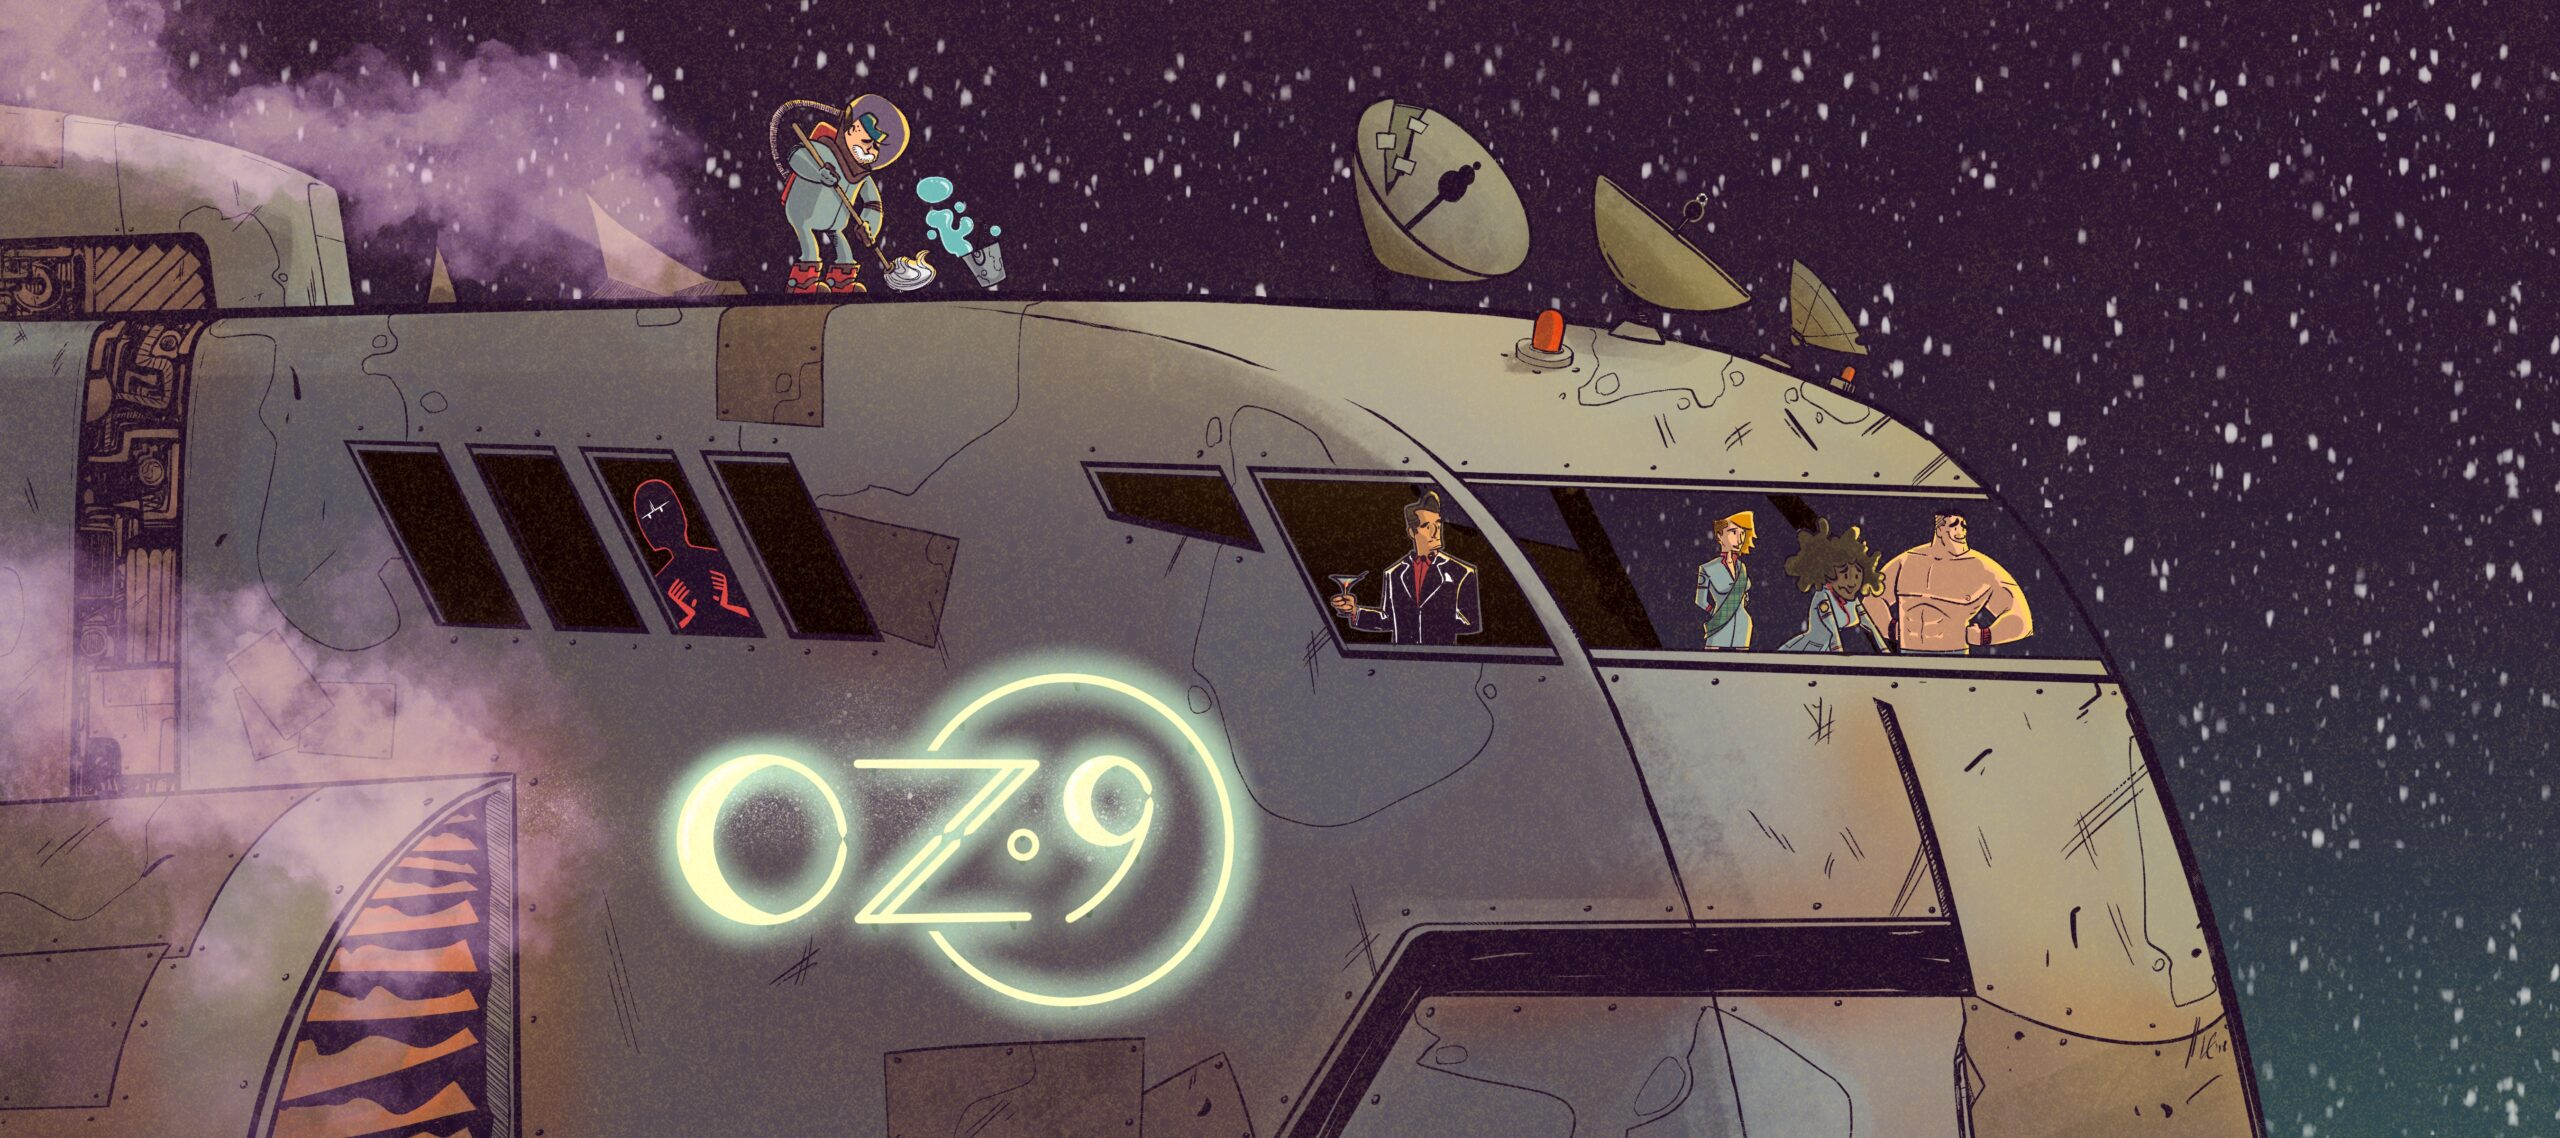 Oz 9 Podcast is Launching a Comic!